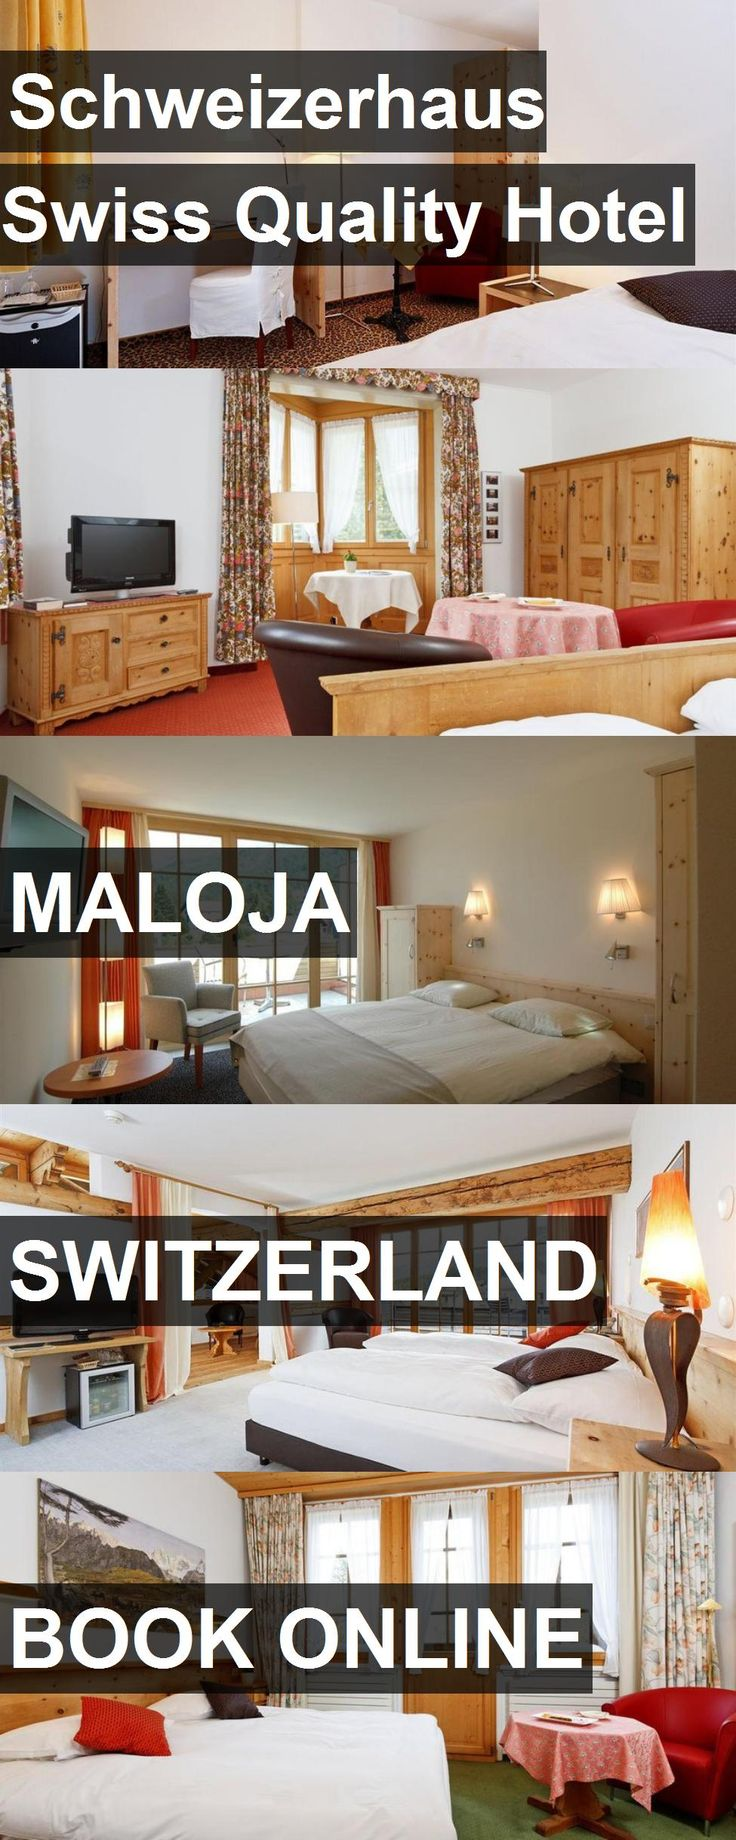 Schweizerhaus Swiss Quality Hotel in Maloja, Switzerland. For more information, photos, reviews and best prices please follow the link. #Switzerland #Maloja #travel #vacation #hotel